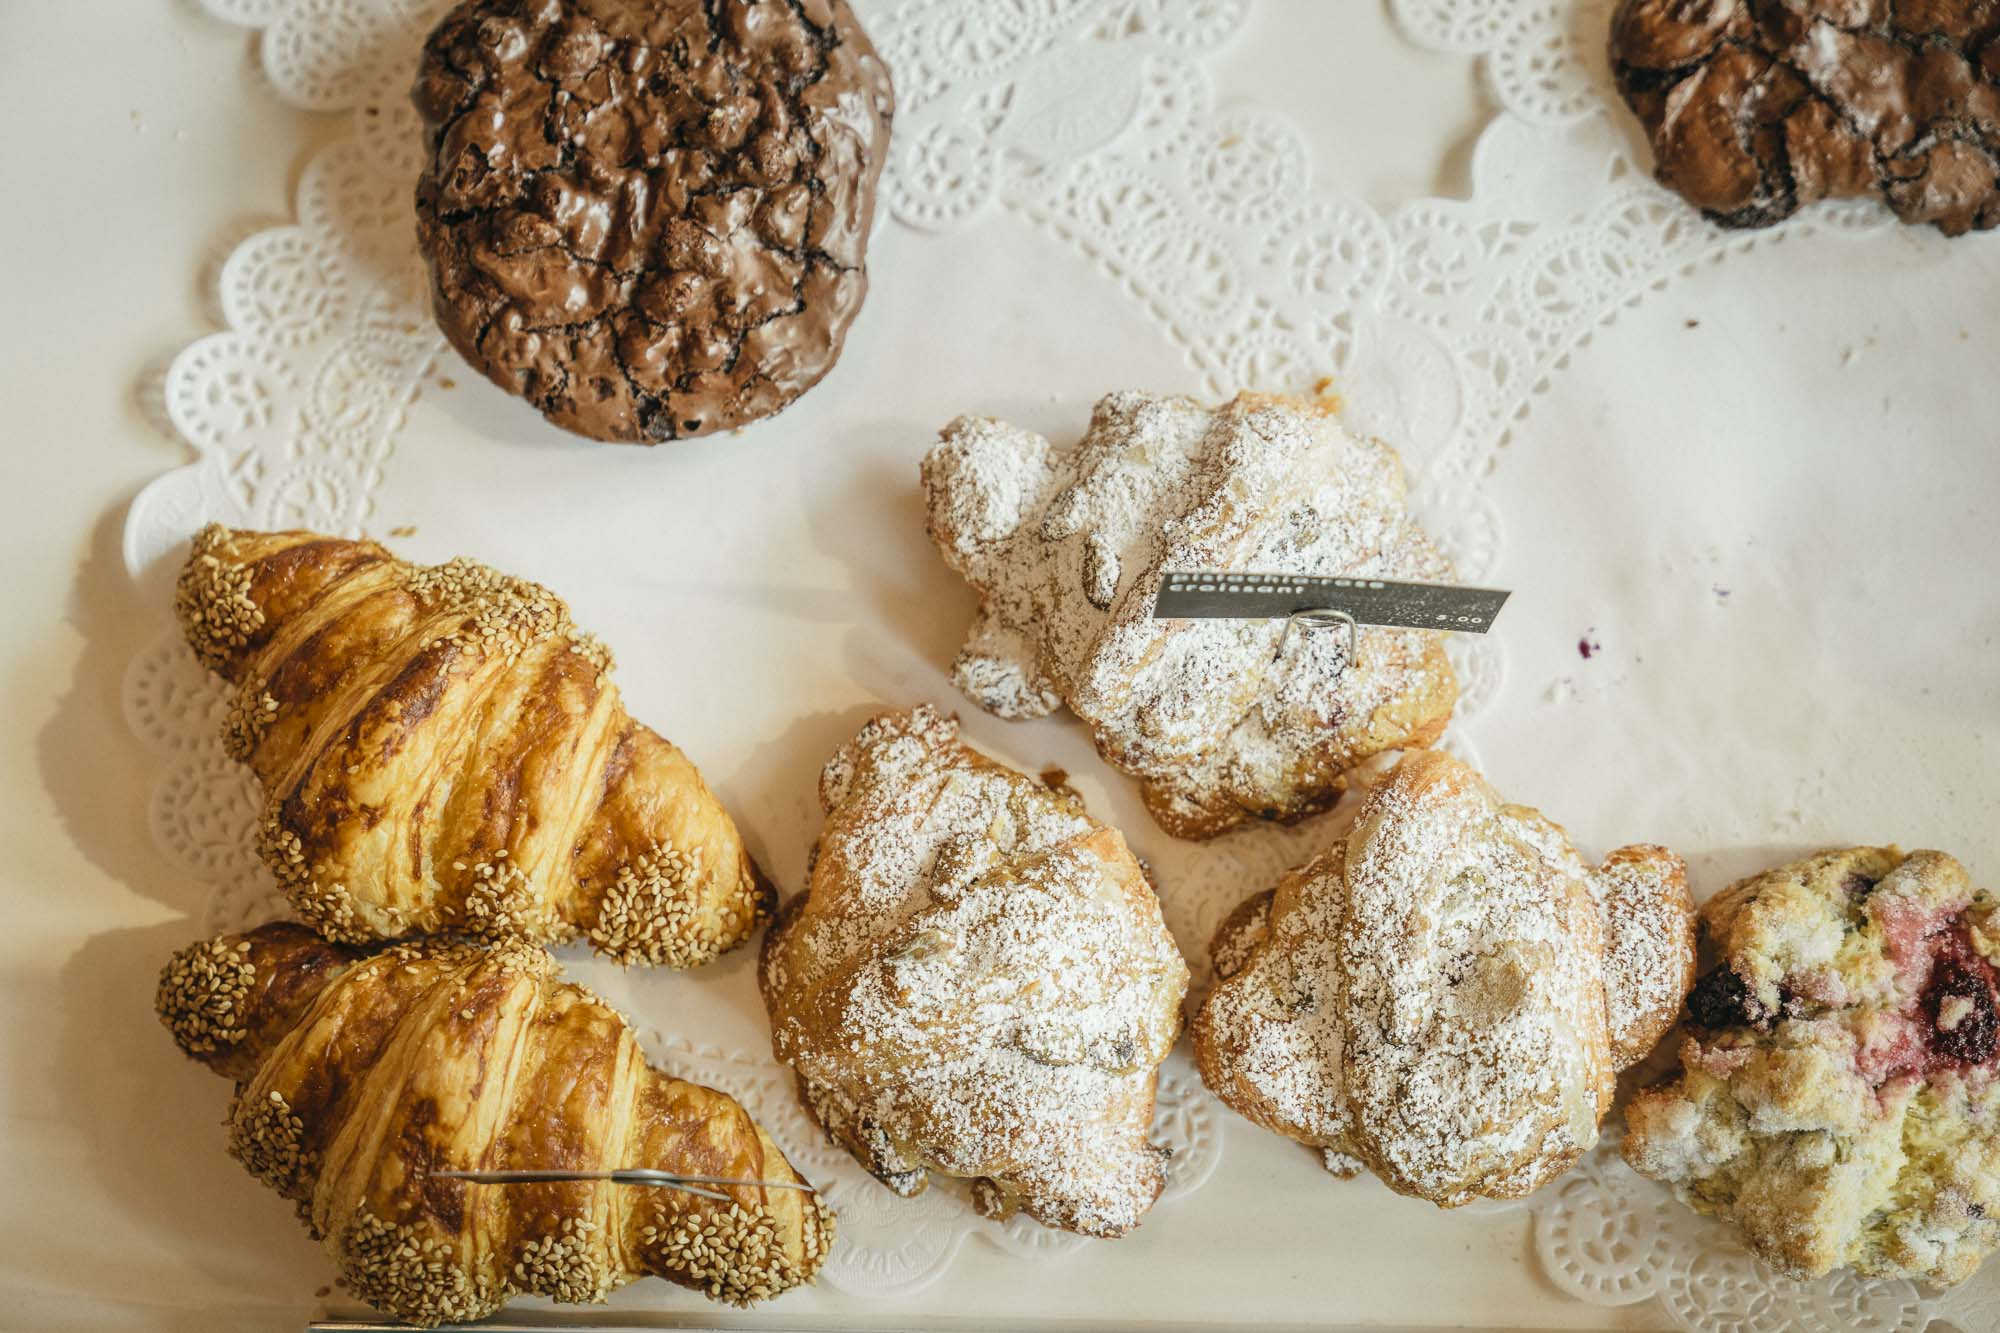 delicious pastries from Heart Coffee